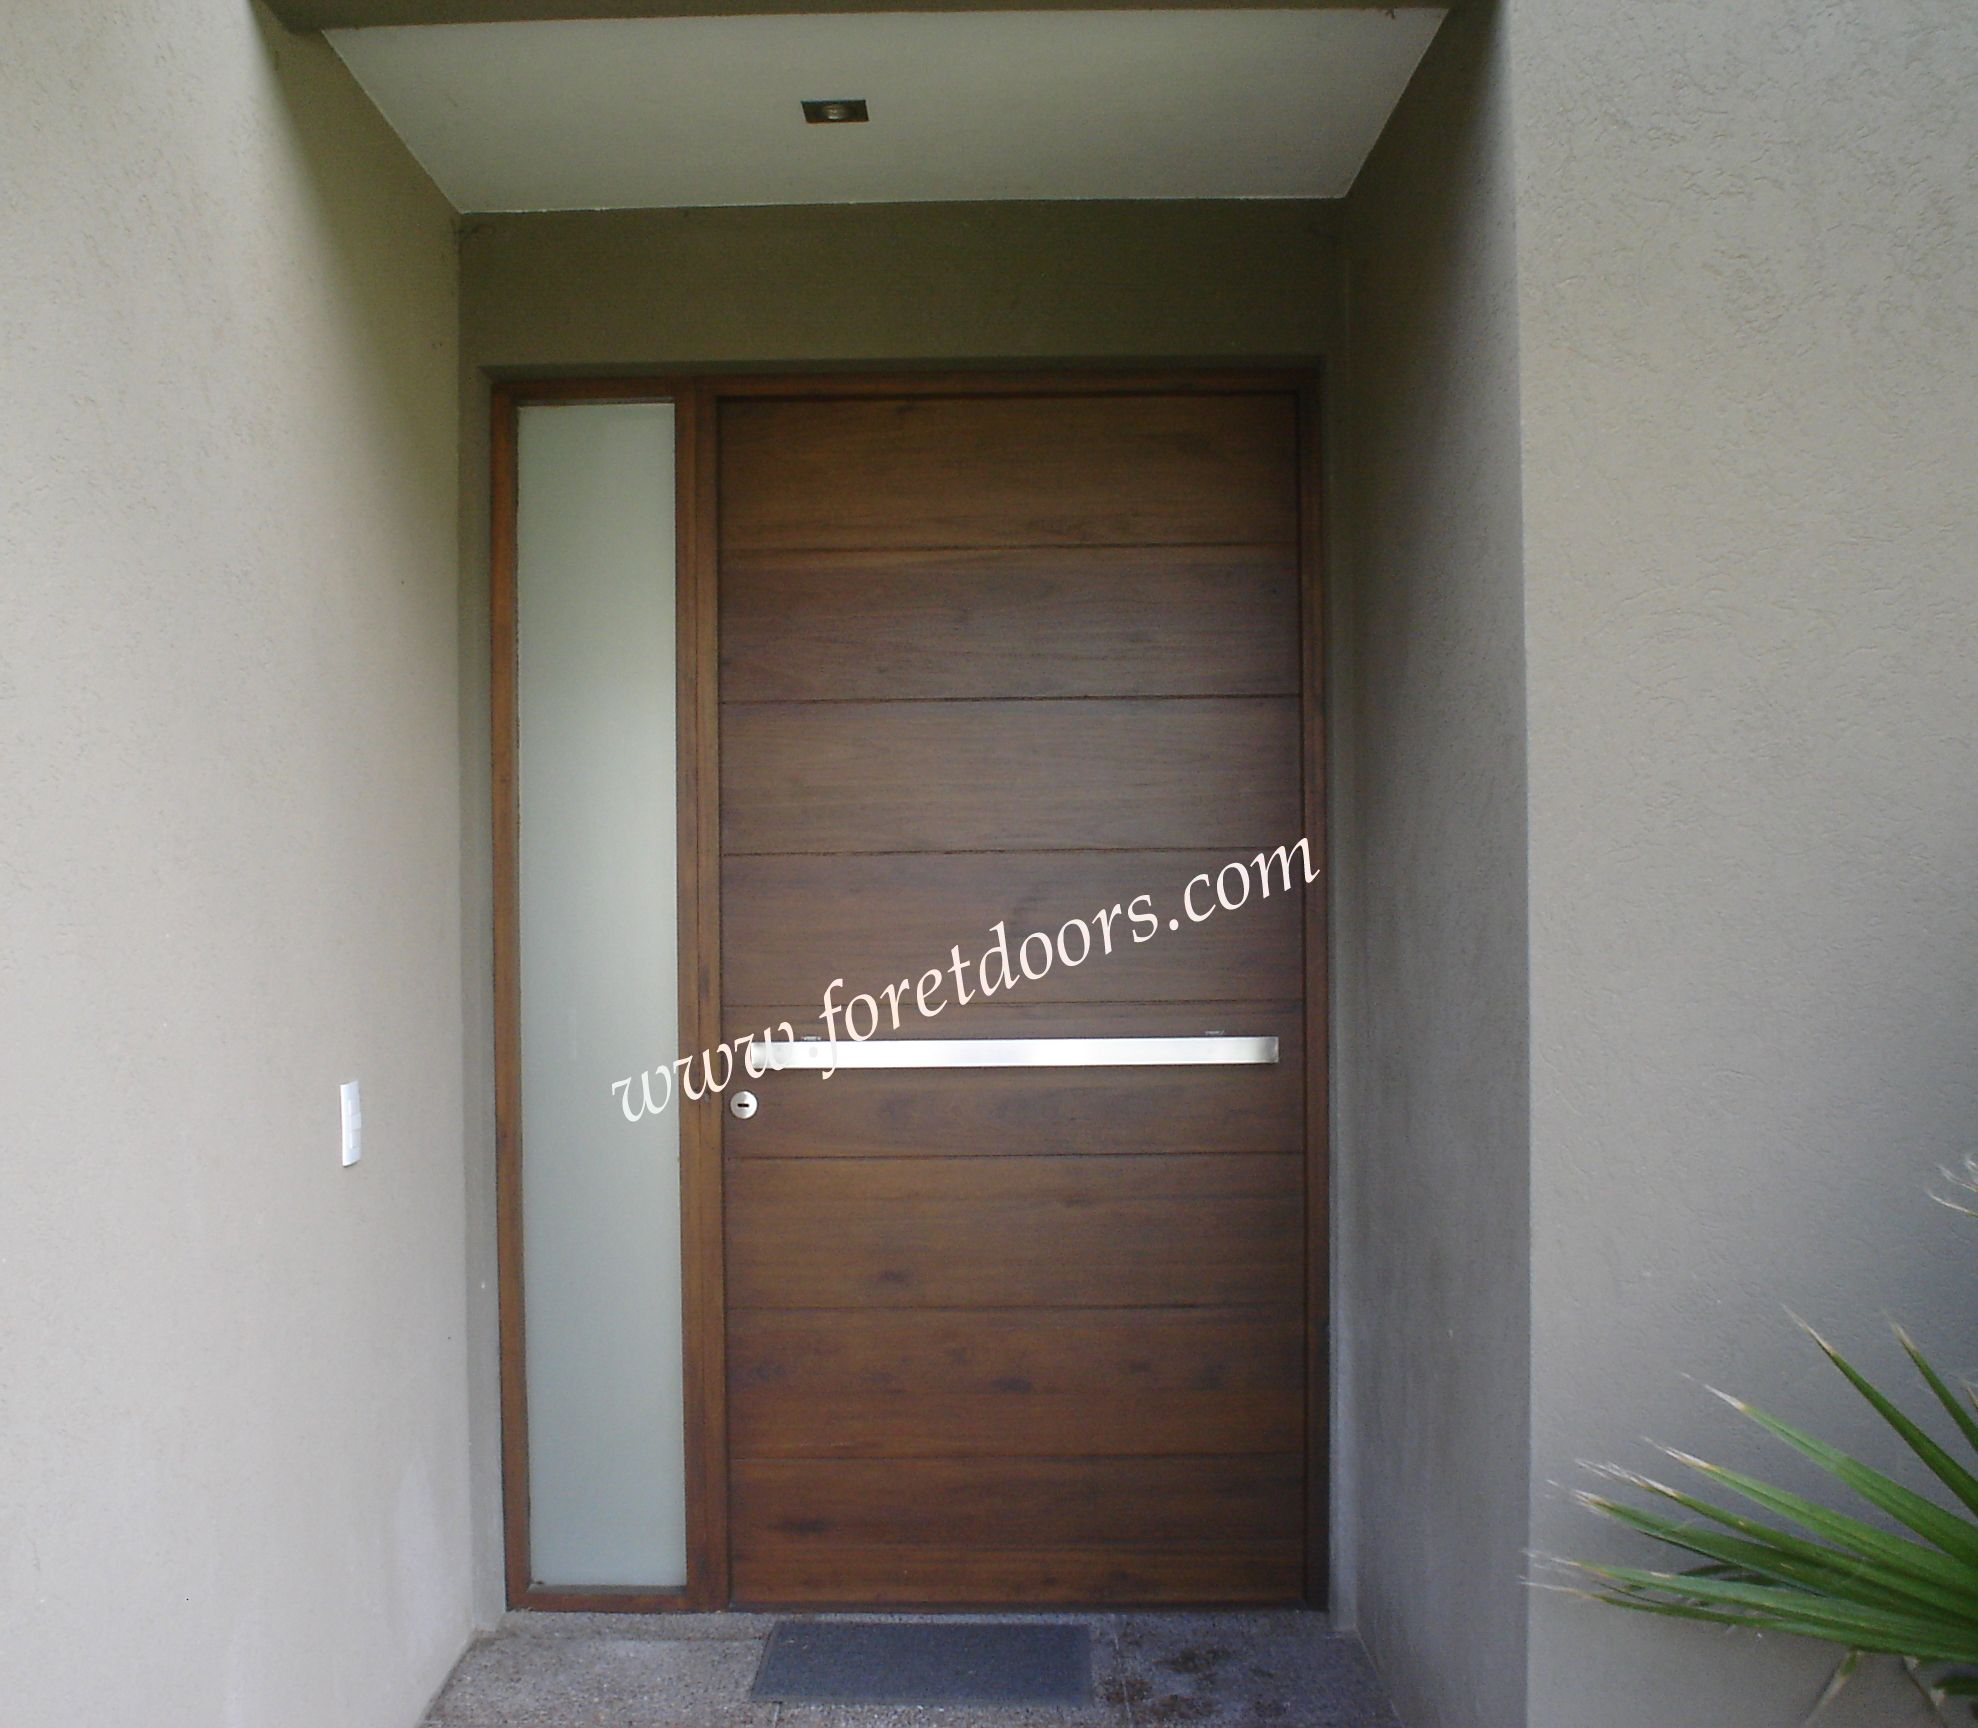 Modelos De Ventanas Exteriores Contemporary Entry Doors By Foret Doors Foretdoors